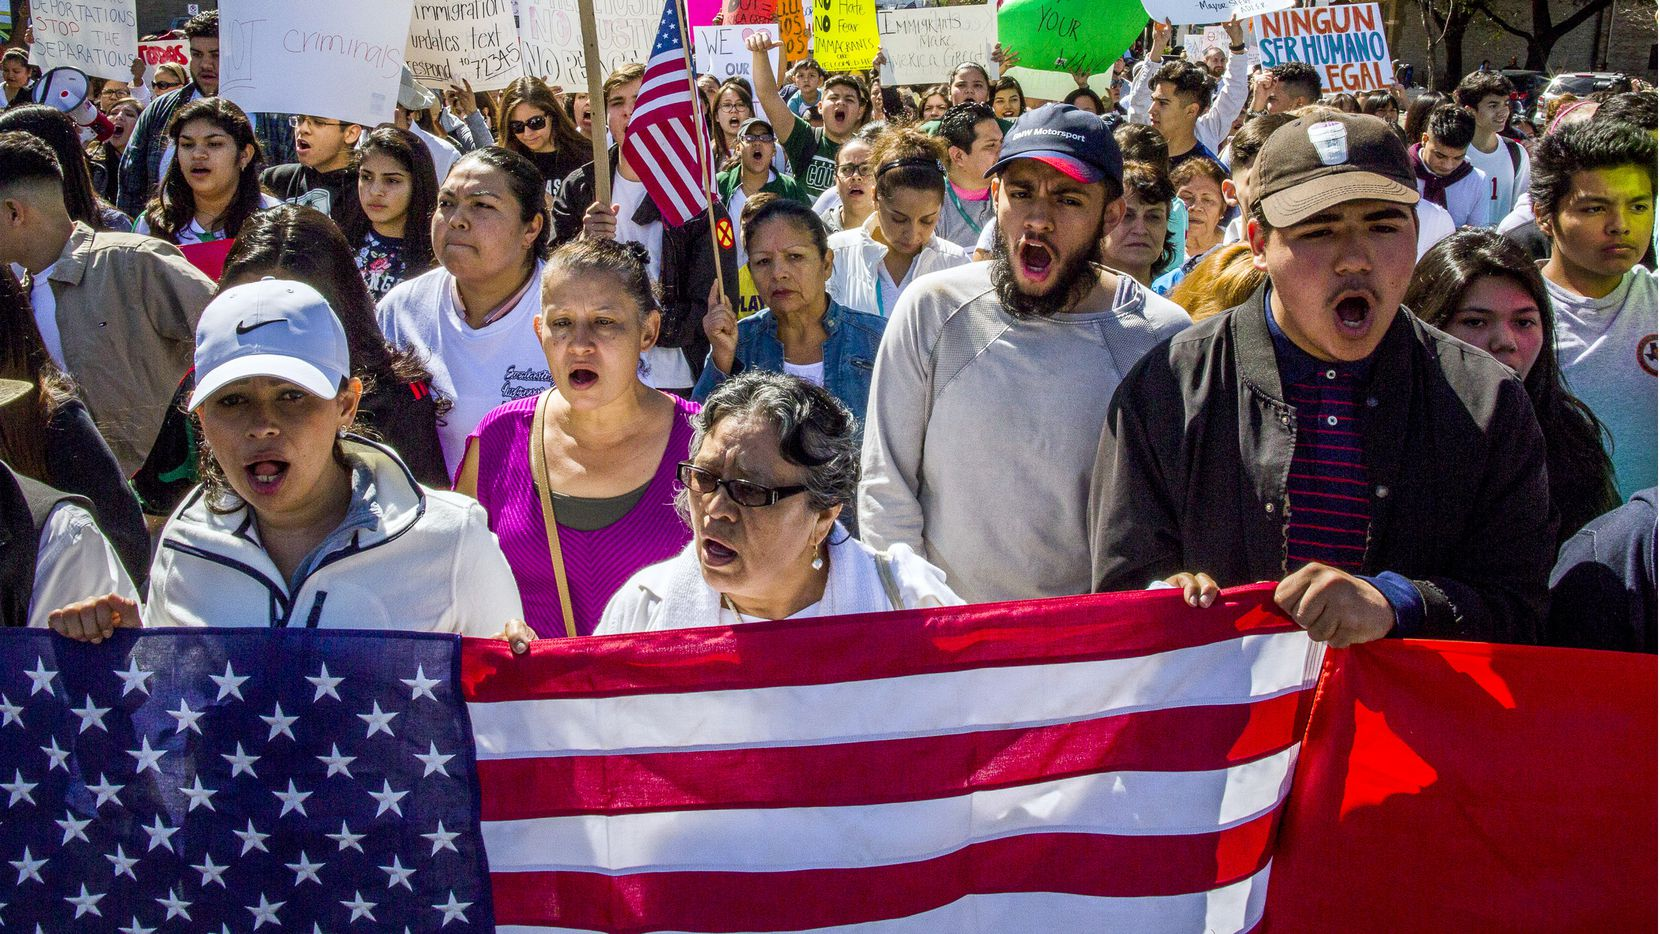 Protesters march in the streets outside the Texas State Capital on 'A Day Without Immigrants' February 16, 2017 in Austin, Texas.  The crowd, which grew to well over a thousand participants, marched from the Austin City Hall to the Texas State Capital. Across the country hundreds of restaurants and eateries are closing for the day to protest President Trump's immigration policies and to highlight the contributions of immigrants to U.S. business and life.  (Photo by Drew Anthony Smith/Getty Images)